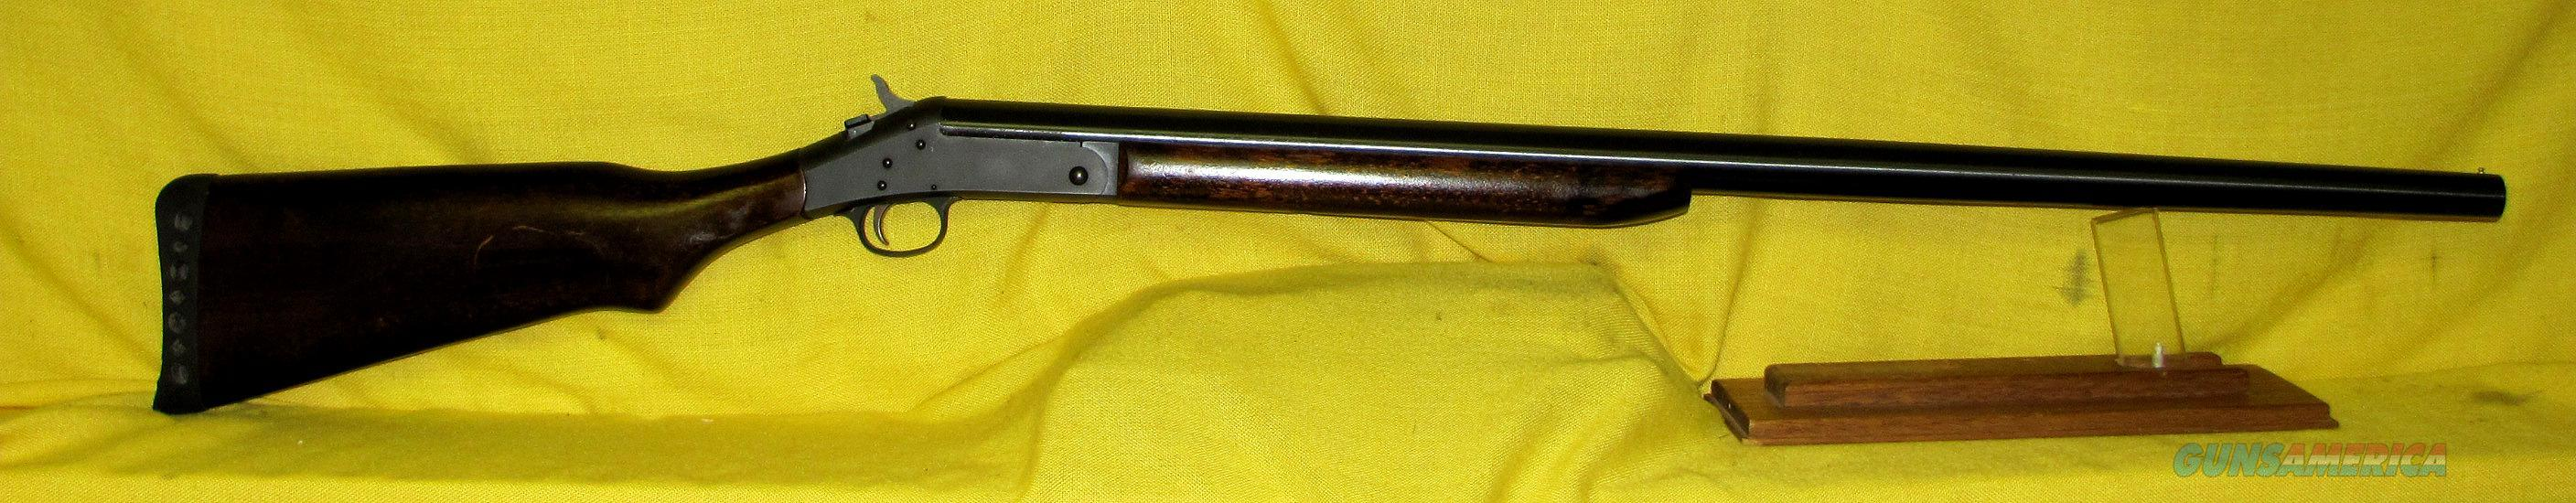 "NEF SB2 10GA 3 1/2"" CHAMBER 31 1/2"" BARREL  Guns > Shotguns > New England Firearms (NEF) Shotguns"